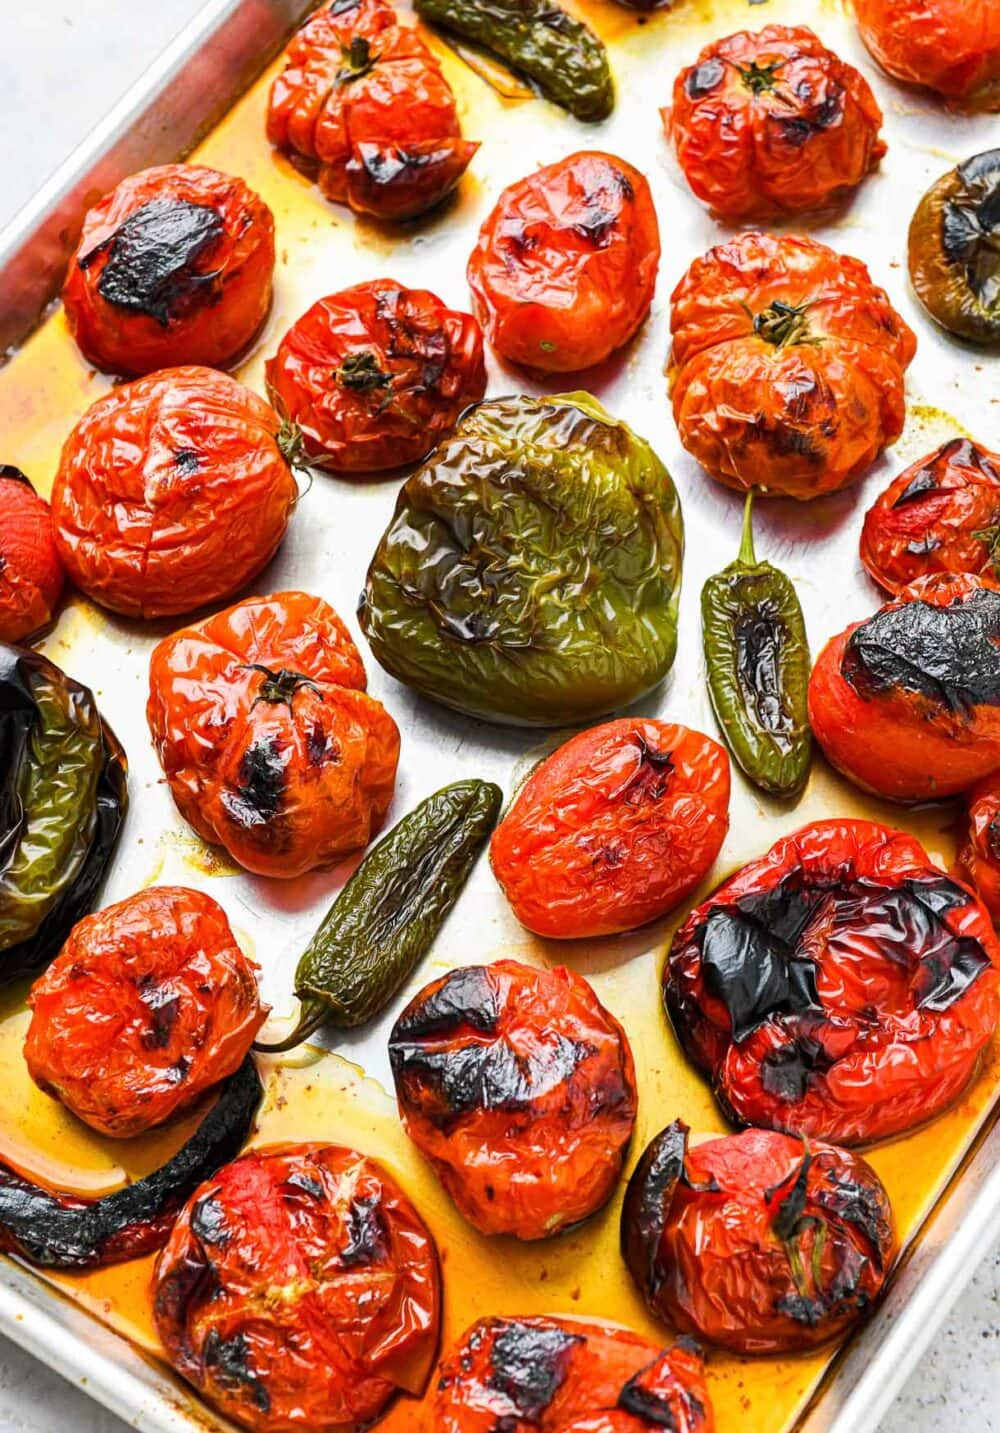 tomatoe, jalapenos, peppers, broiled on a sheet pan